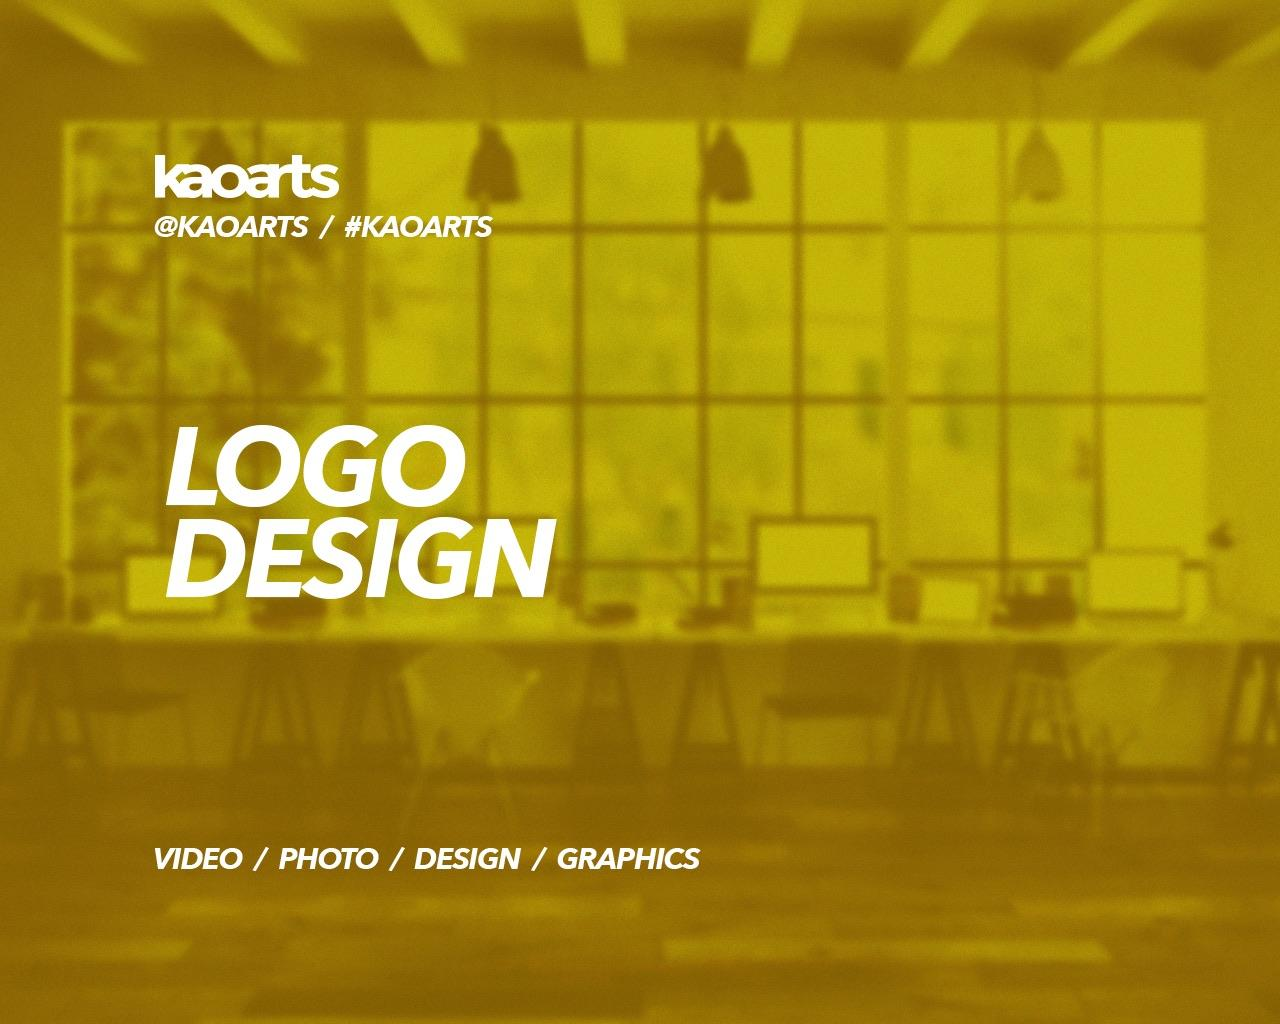 Professional Logo Design by Kaoarts - 95843